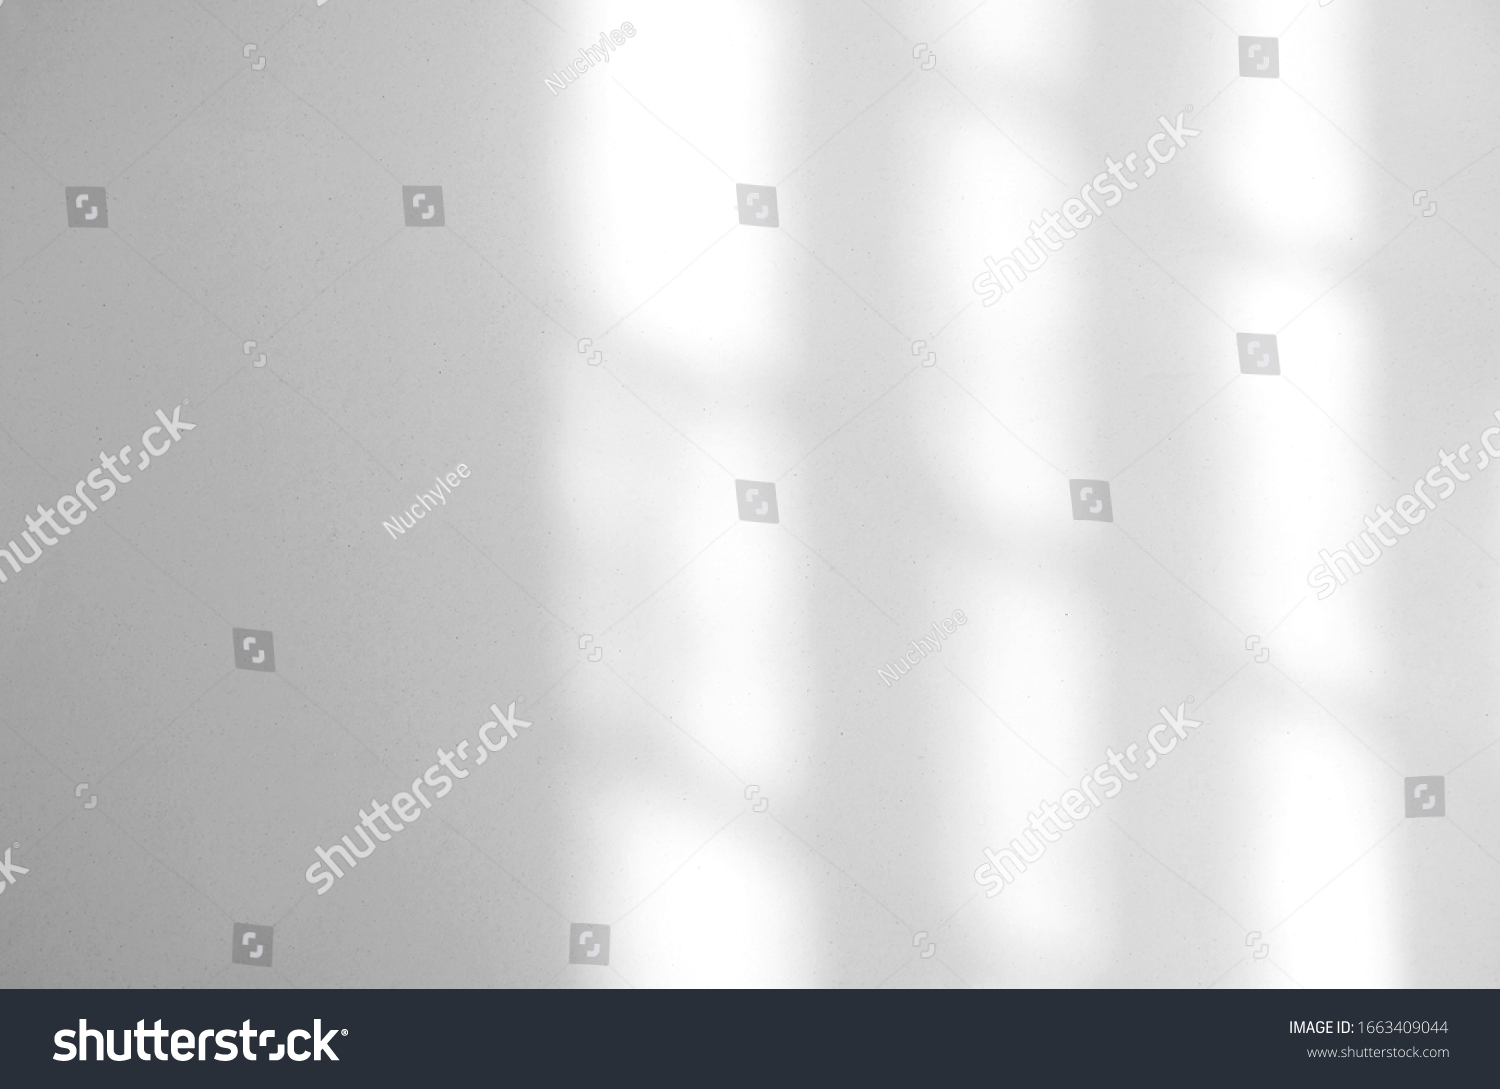 Window natural shadow overlay effect on white texture background, for overlay on product presentation, backdrop and mockup, summer seasonal concept #1663409044